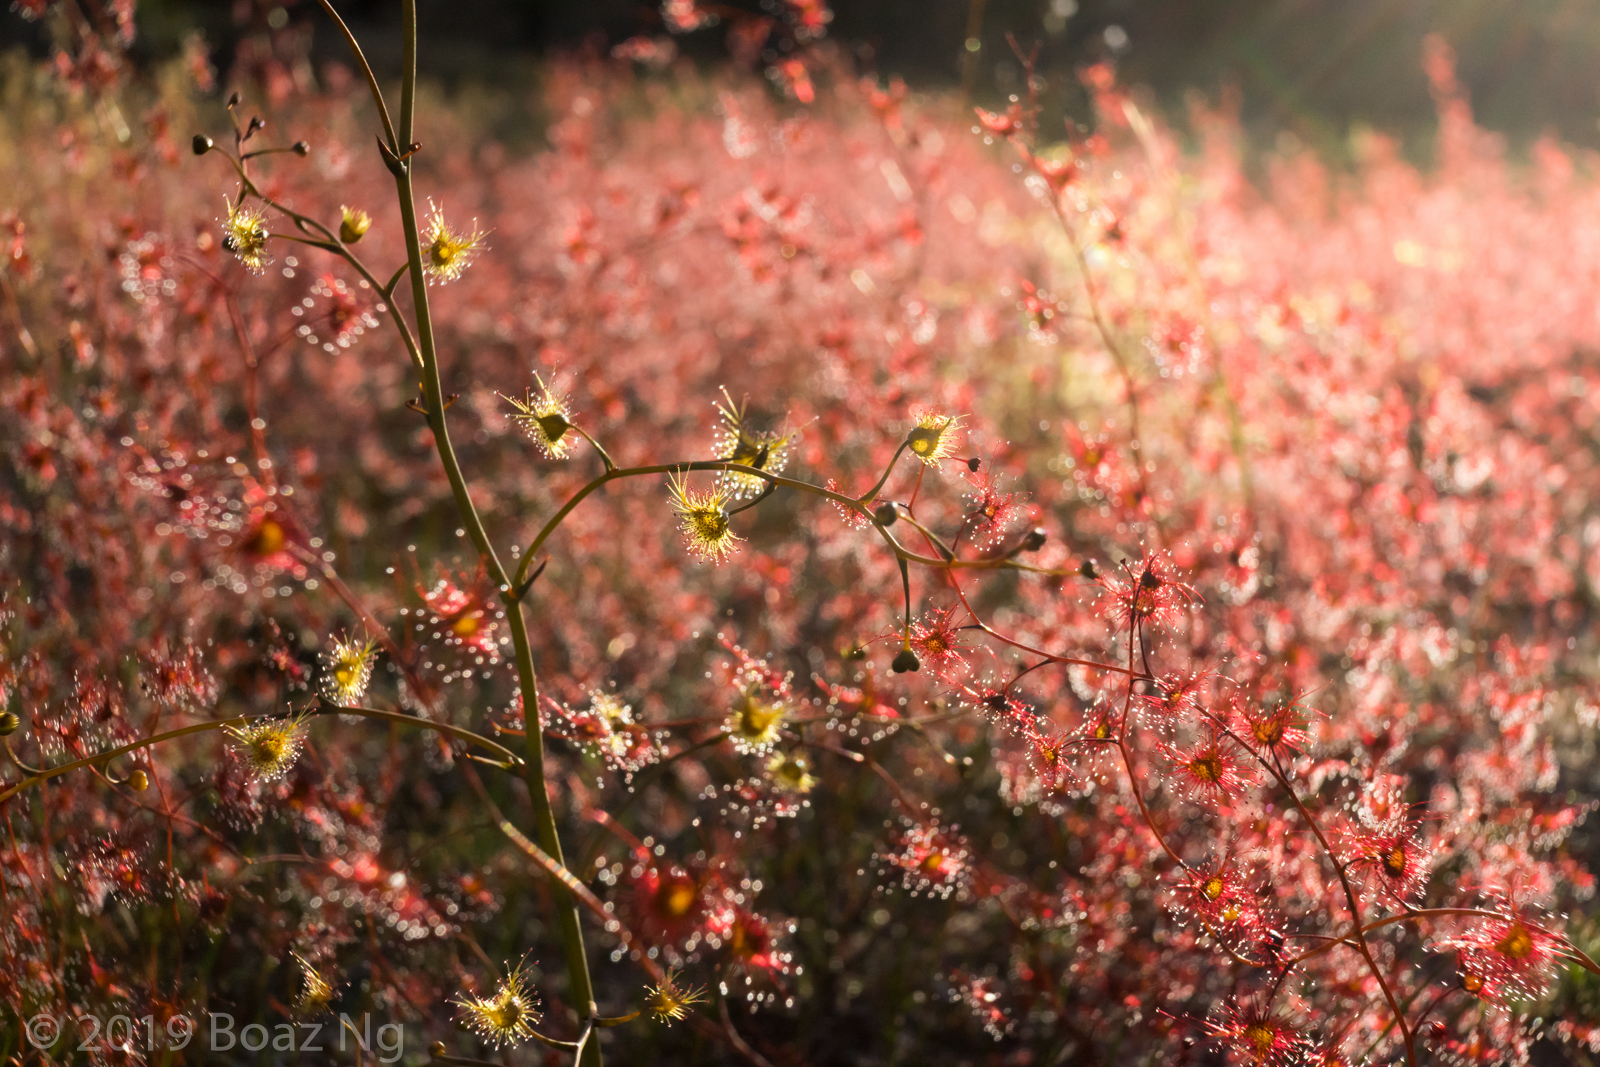 Species spotlight: Drosera gigantea